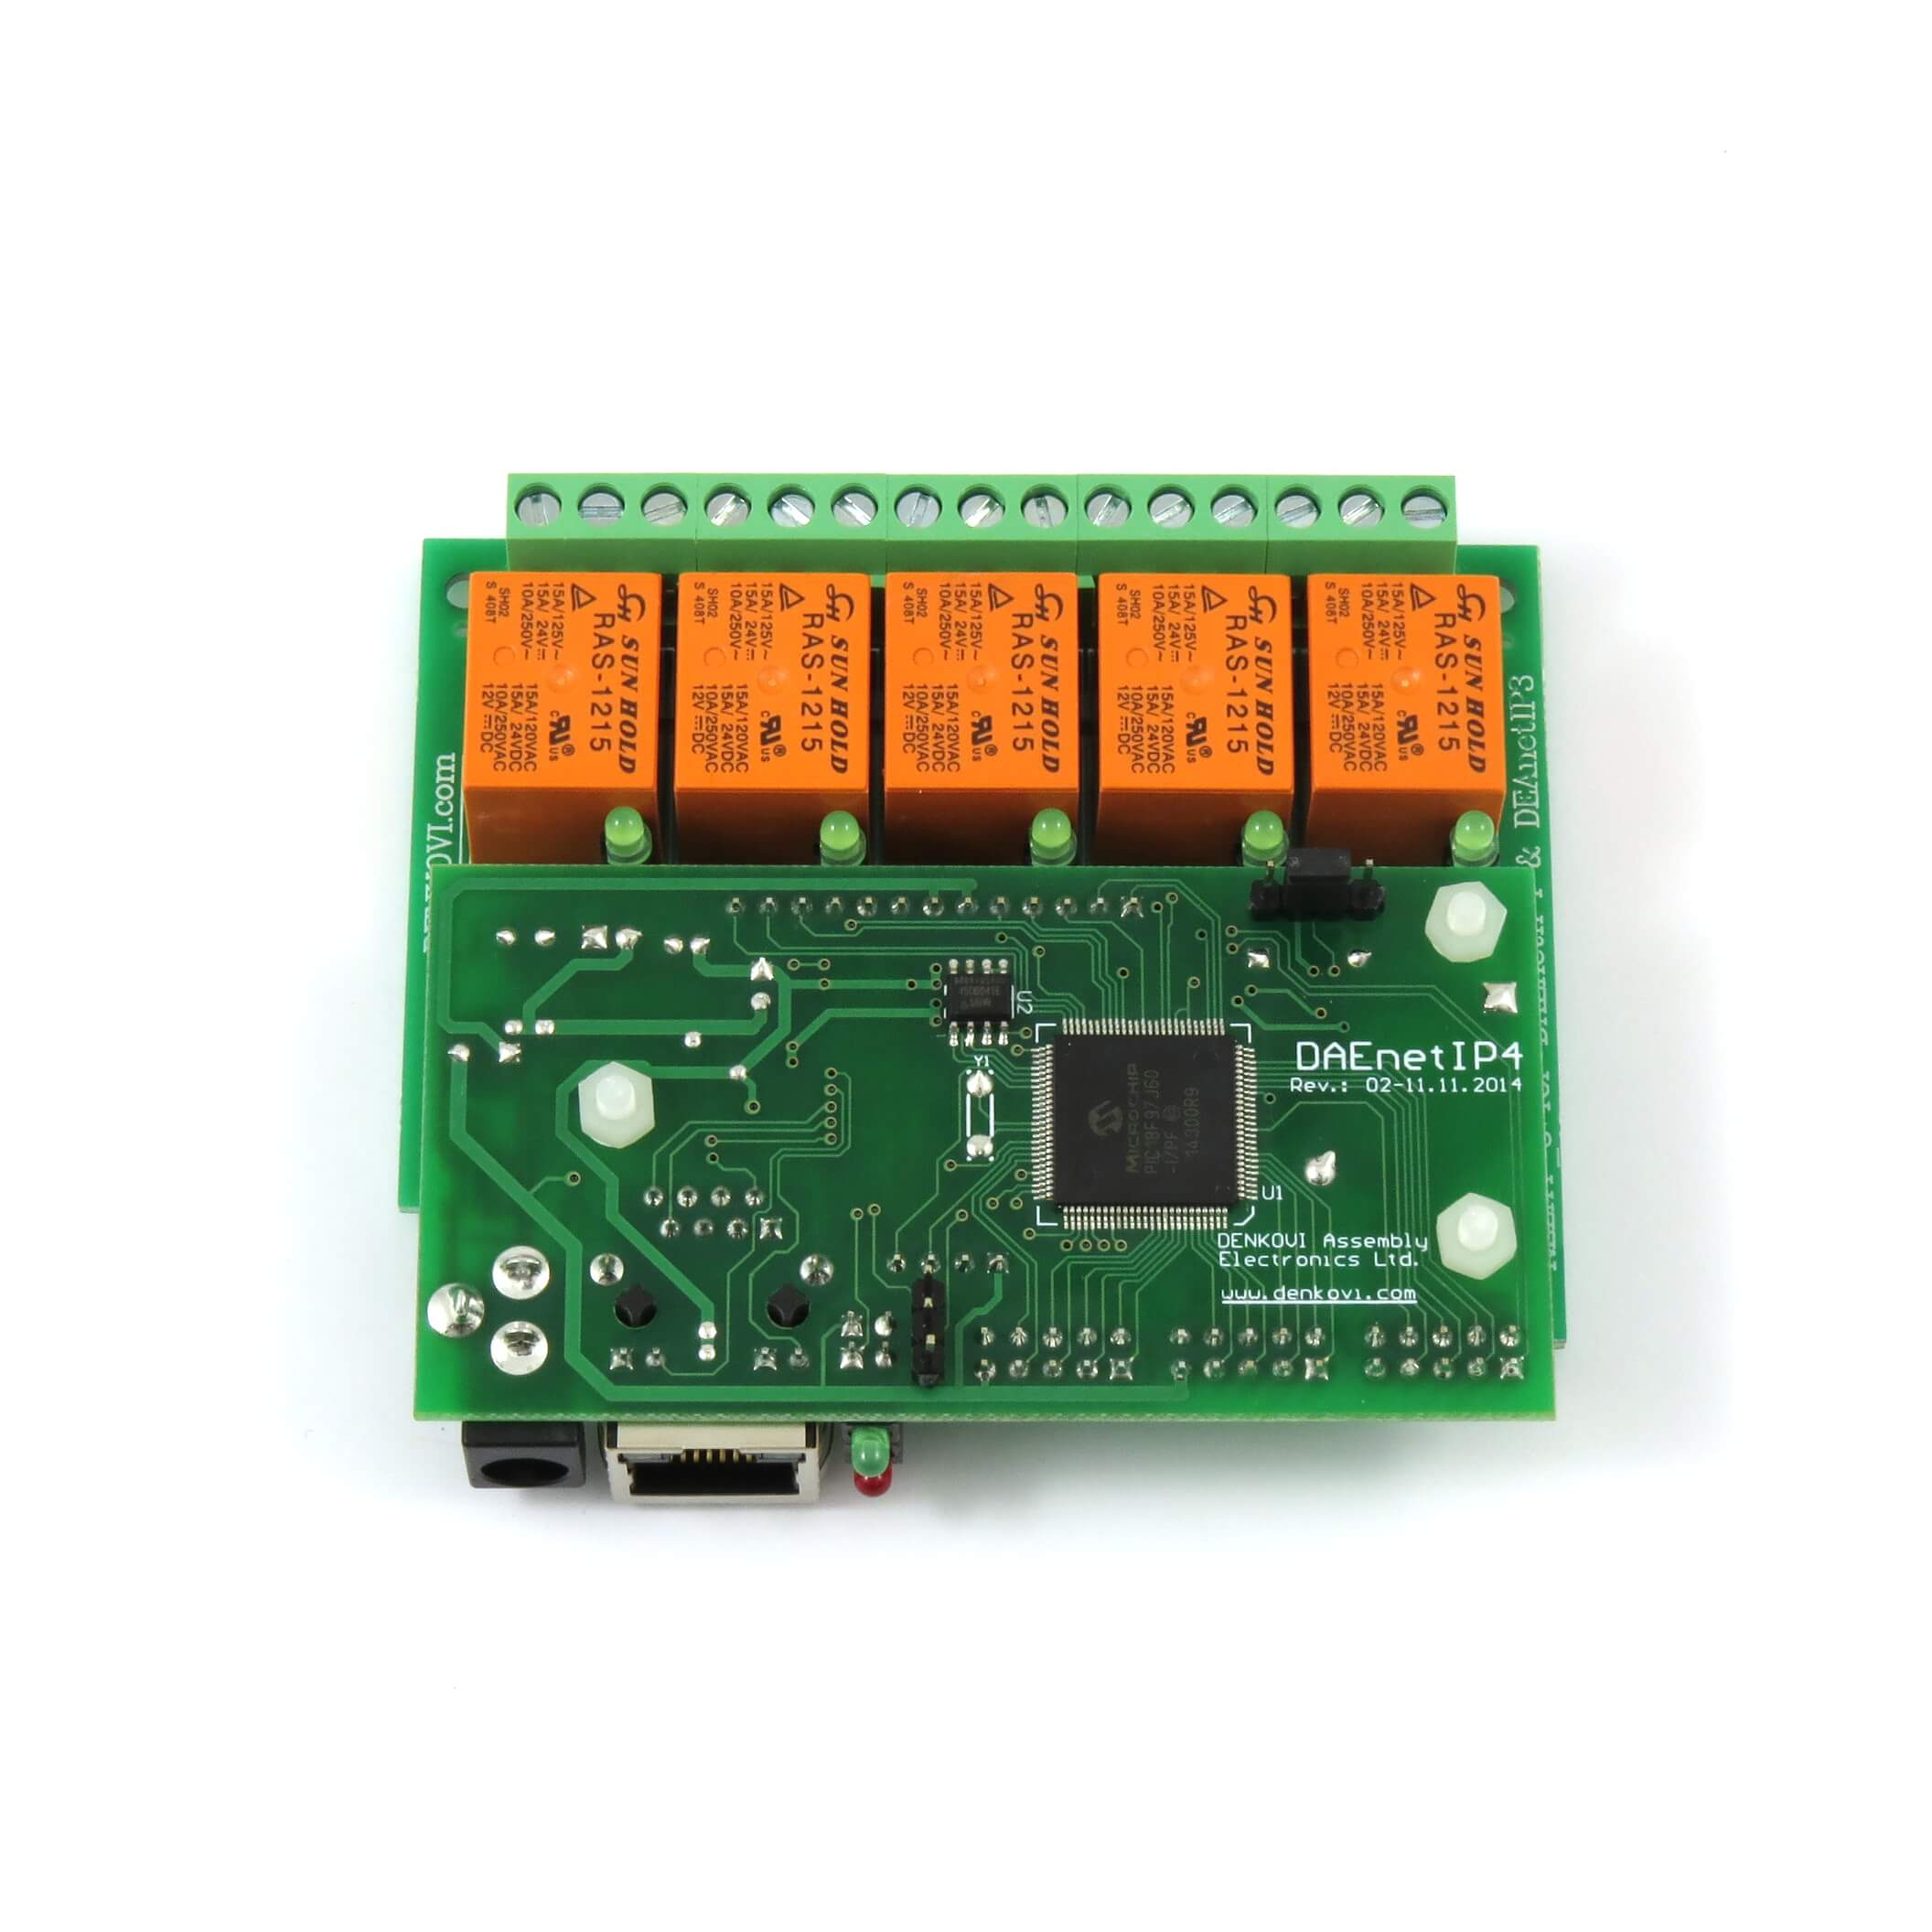 Details about Web controlled I/O ADC 5 relay output board: IP, MAC, PING,  JAVA, LABVIEW